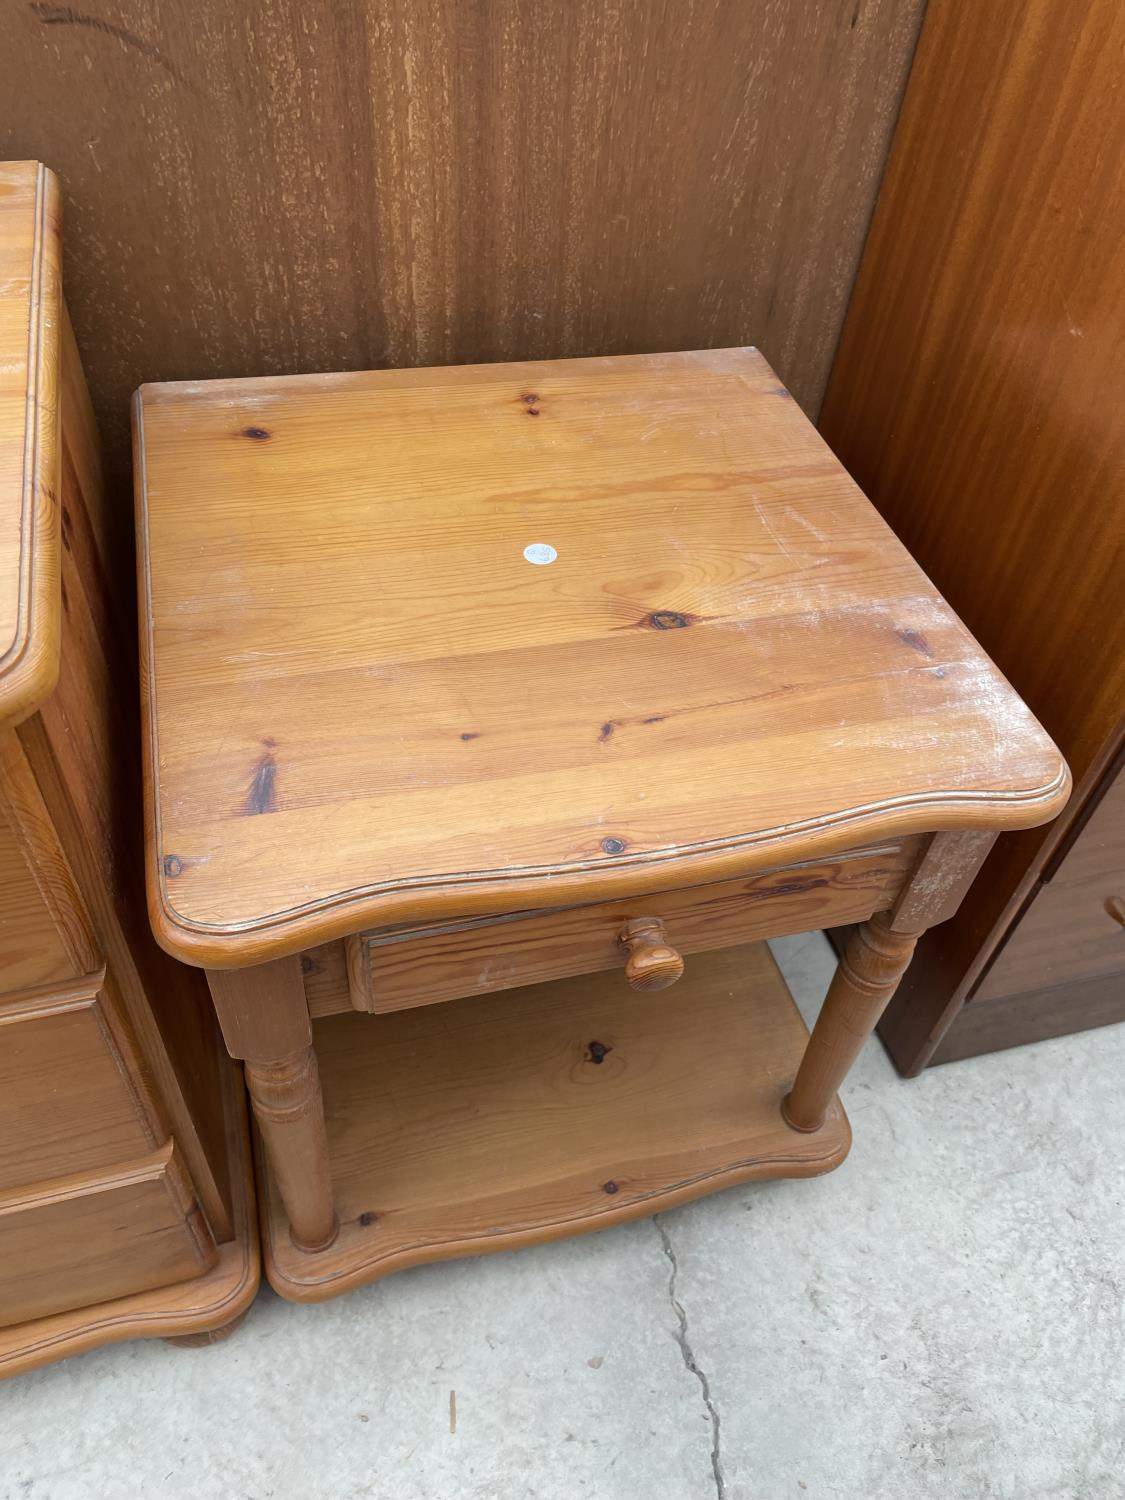 A MODERN PINE DRESSING TABLE WITH MIRROR, STOOL AND TWO BEDSIDE TABLES - Image 7 of 7